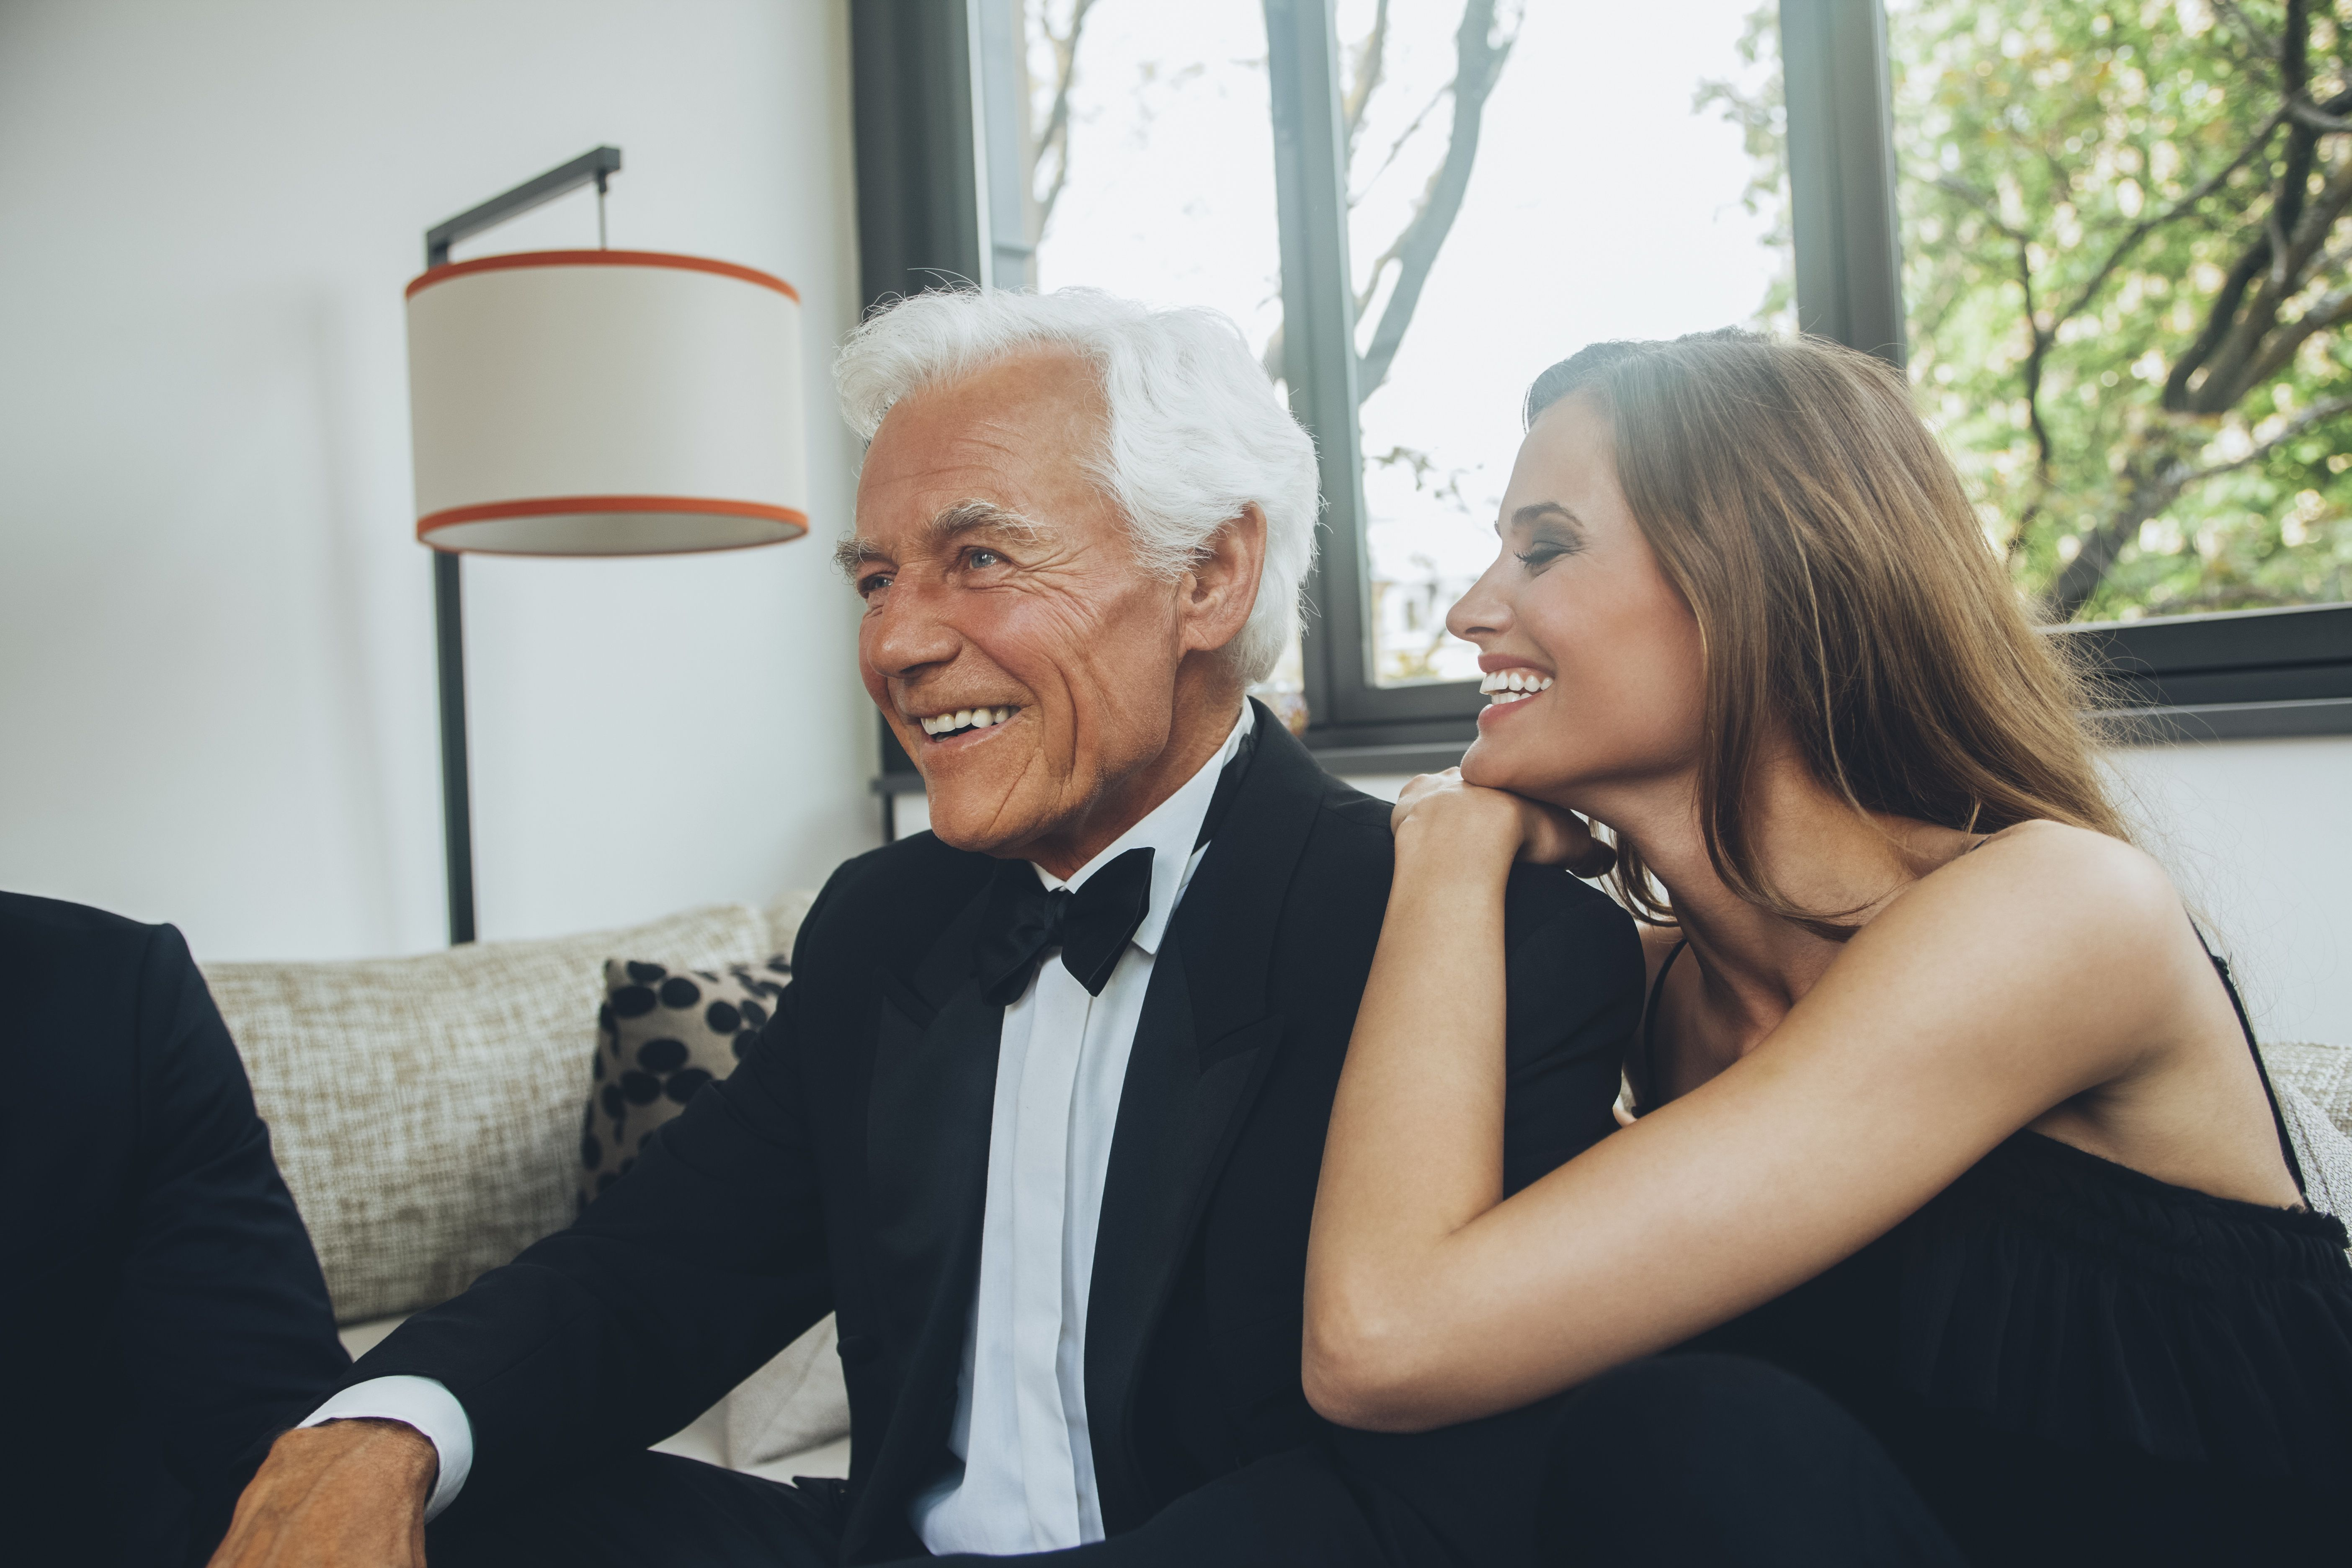 advantages and disadvantages of dating an older man